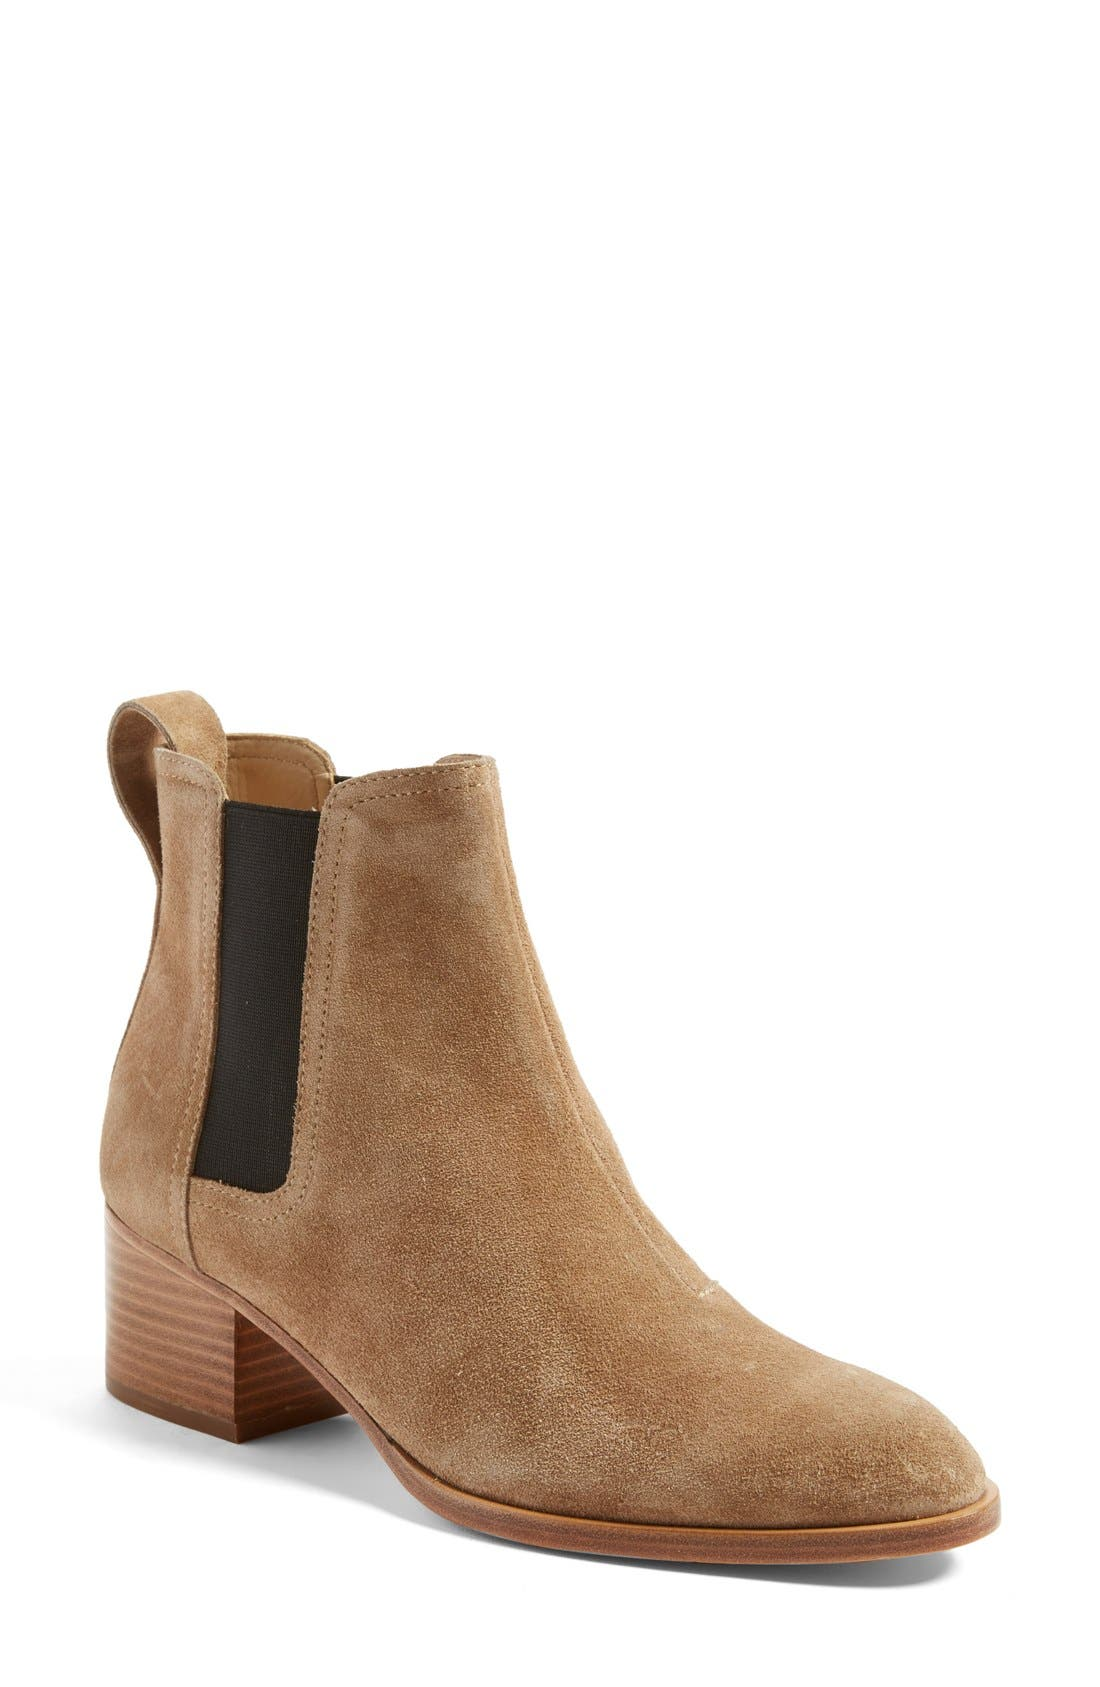 'Walker' Bootie,                         Main,                         color, CAMEL SUEDE